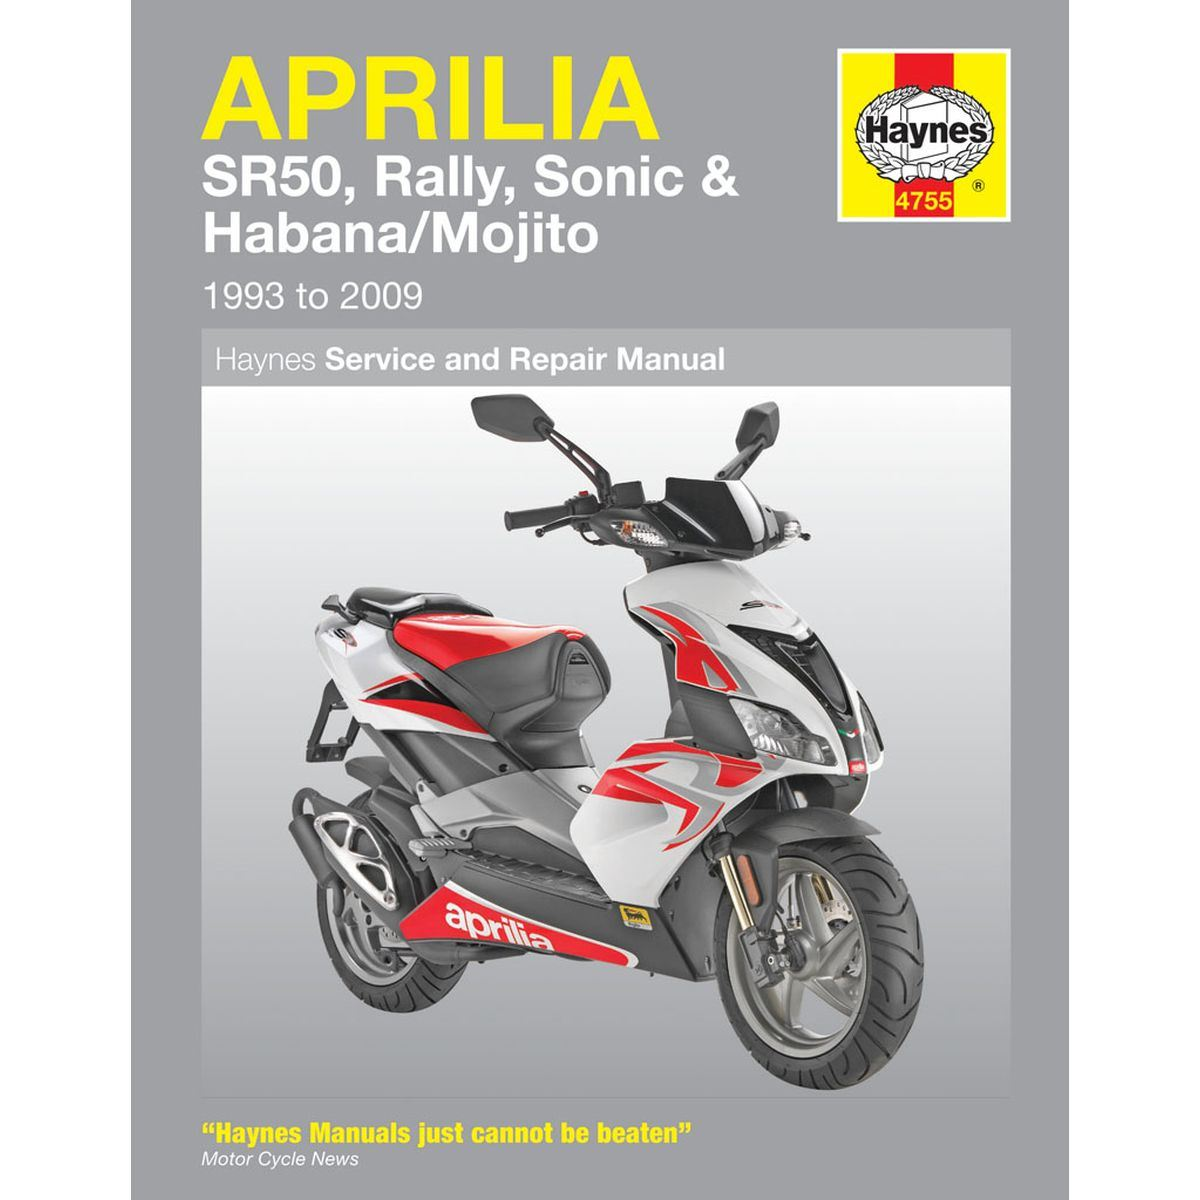 Manual Haynes for 2003 Aprilia Mojito 50 Retro